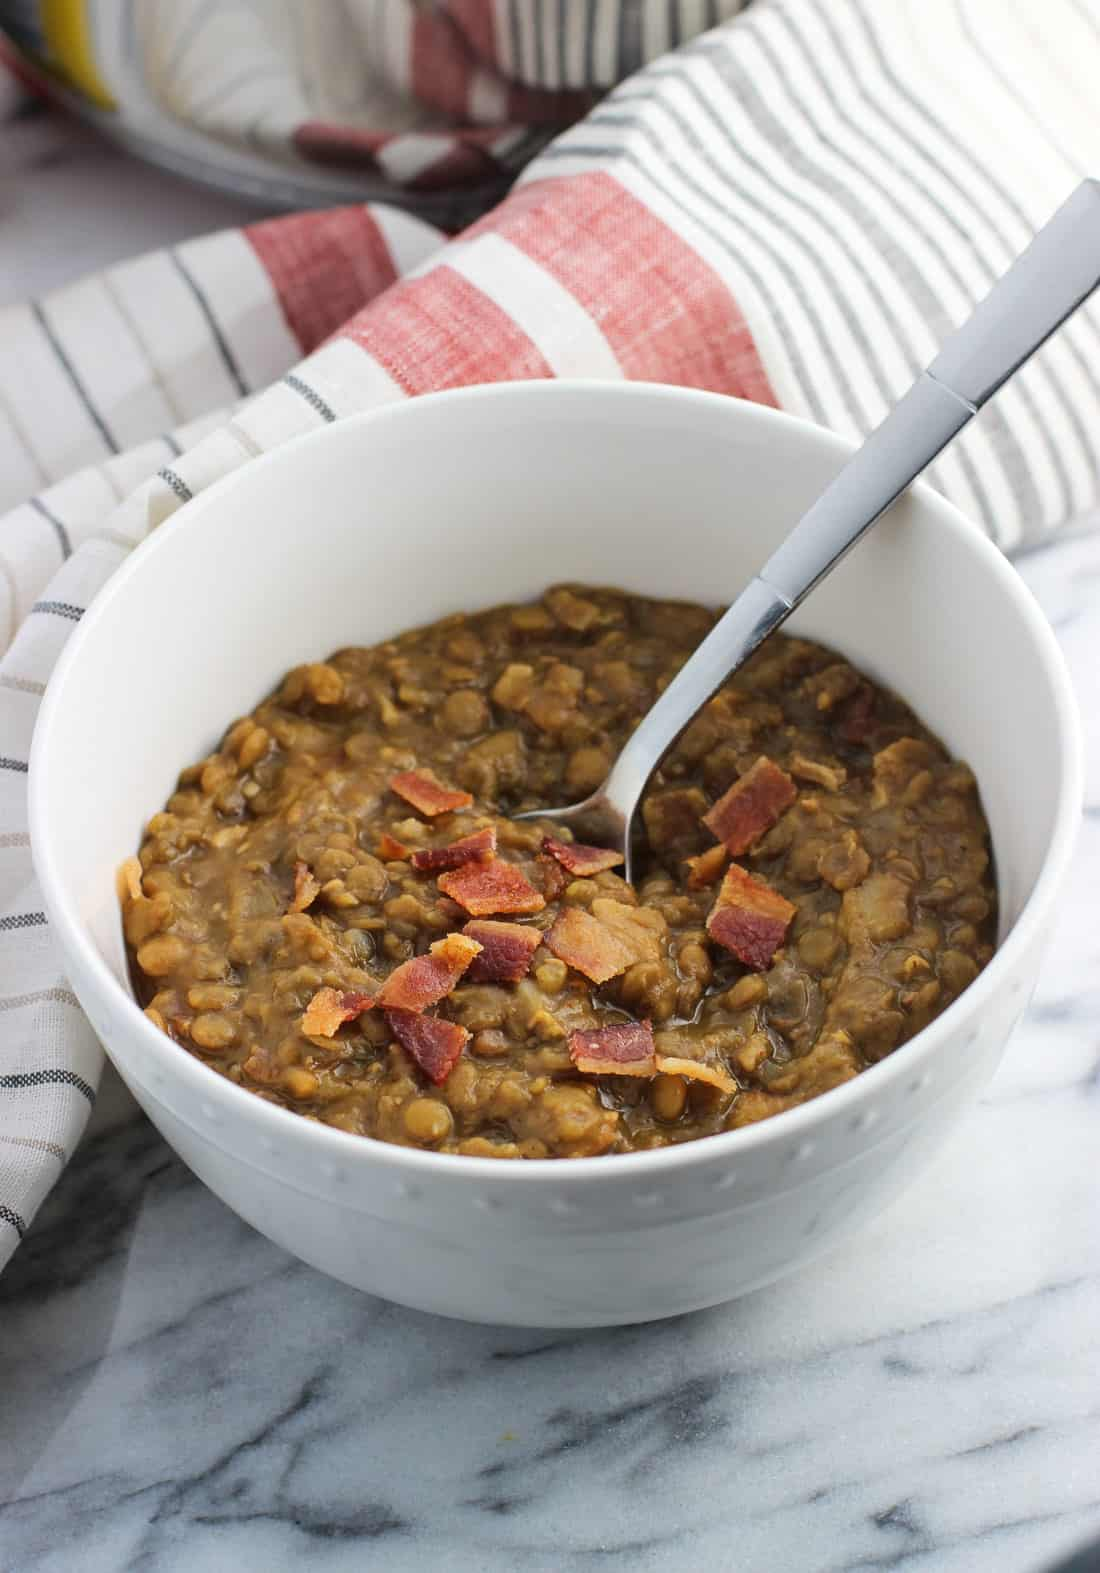 A pot of spicy lentil soup with bacon is a warming and healthy meal option fit for chilly nights or anytime. Old Bay seasoning adds a kick, with bacon rounding out the flavor for this satisfying soup recipe.